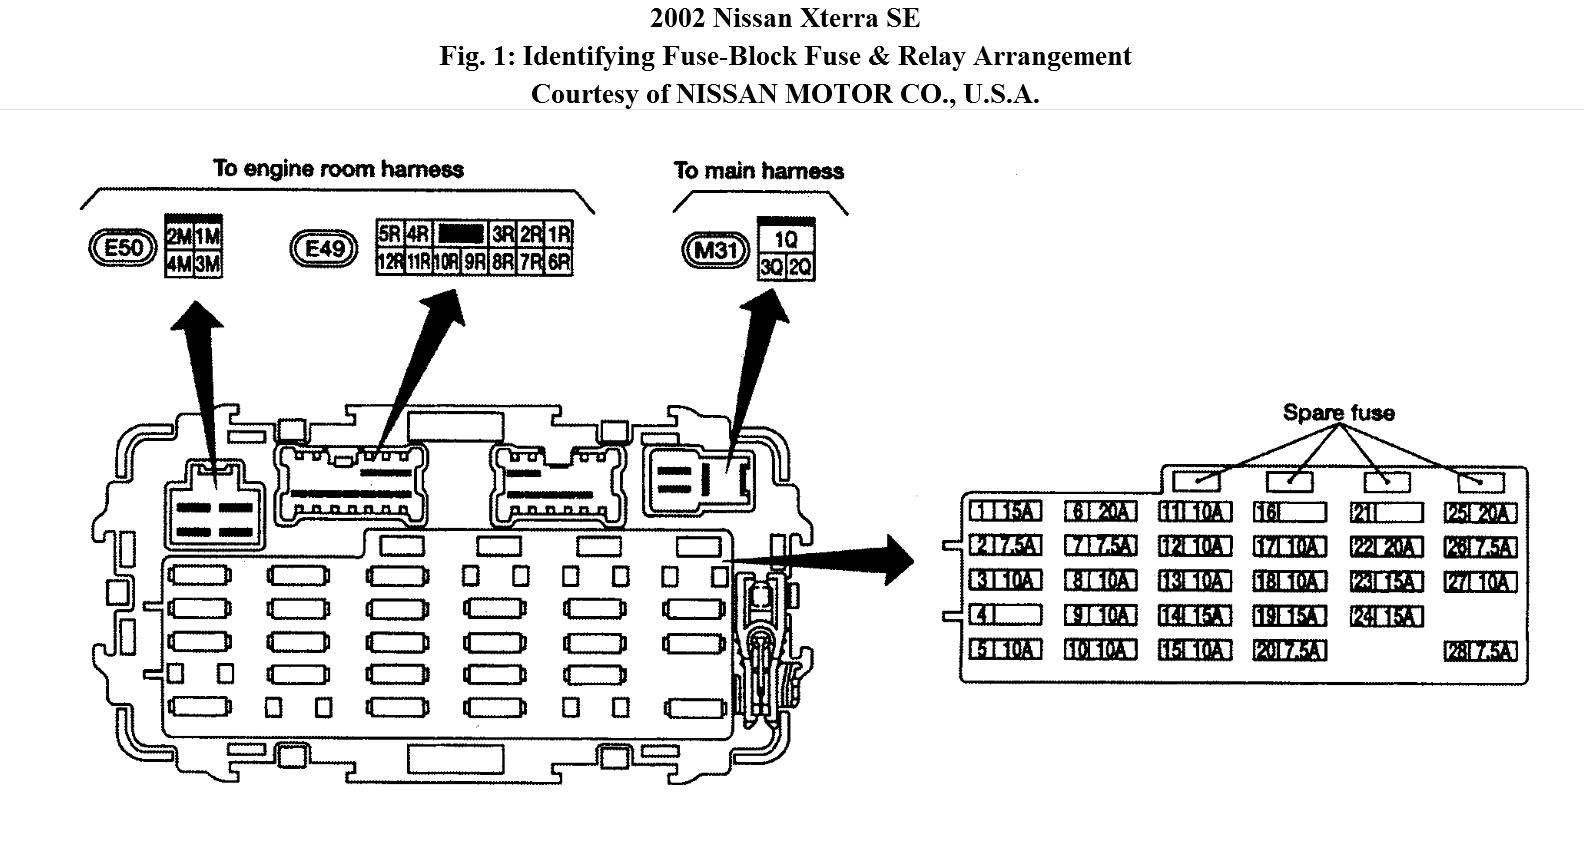 2002 xterra fuse panel diagram 30 wiring diagram images 2003 nissan xterra fuse diagram 2011 nissan xterra fuse diagram